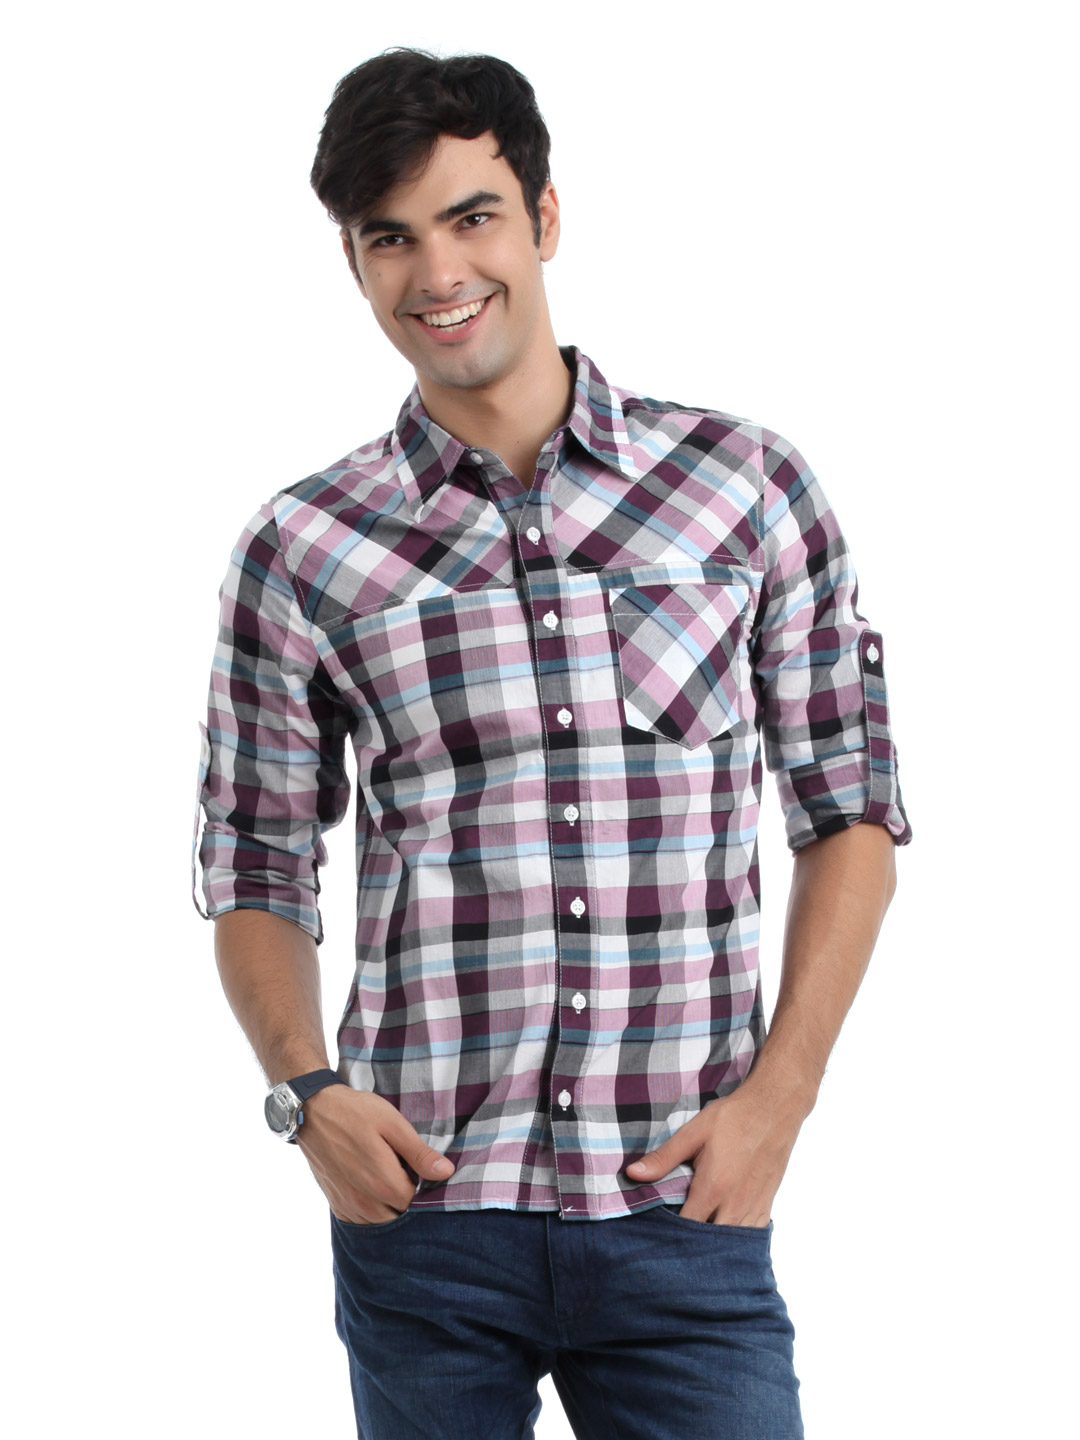 Adidas Men Purple & Black Check Shirt